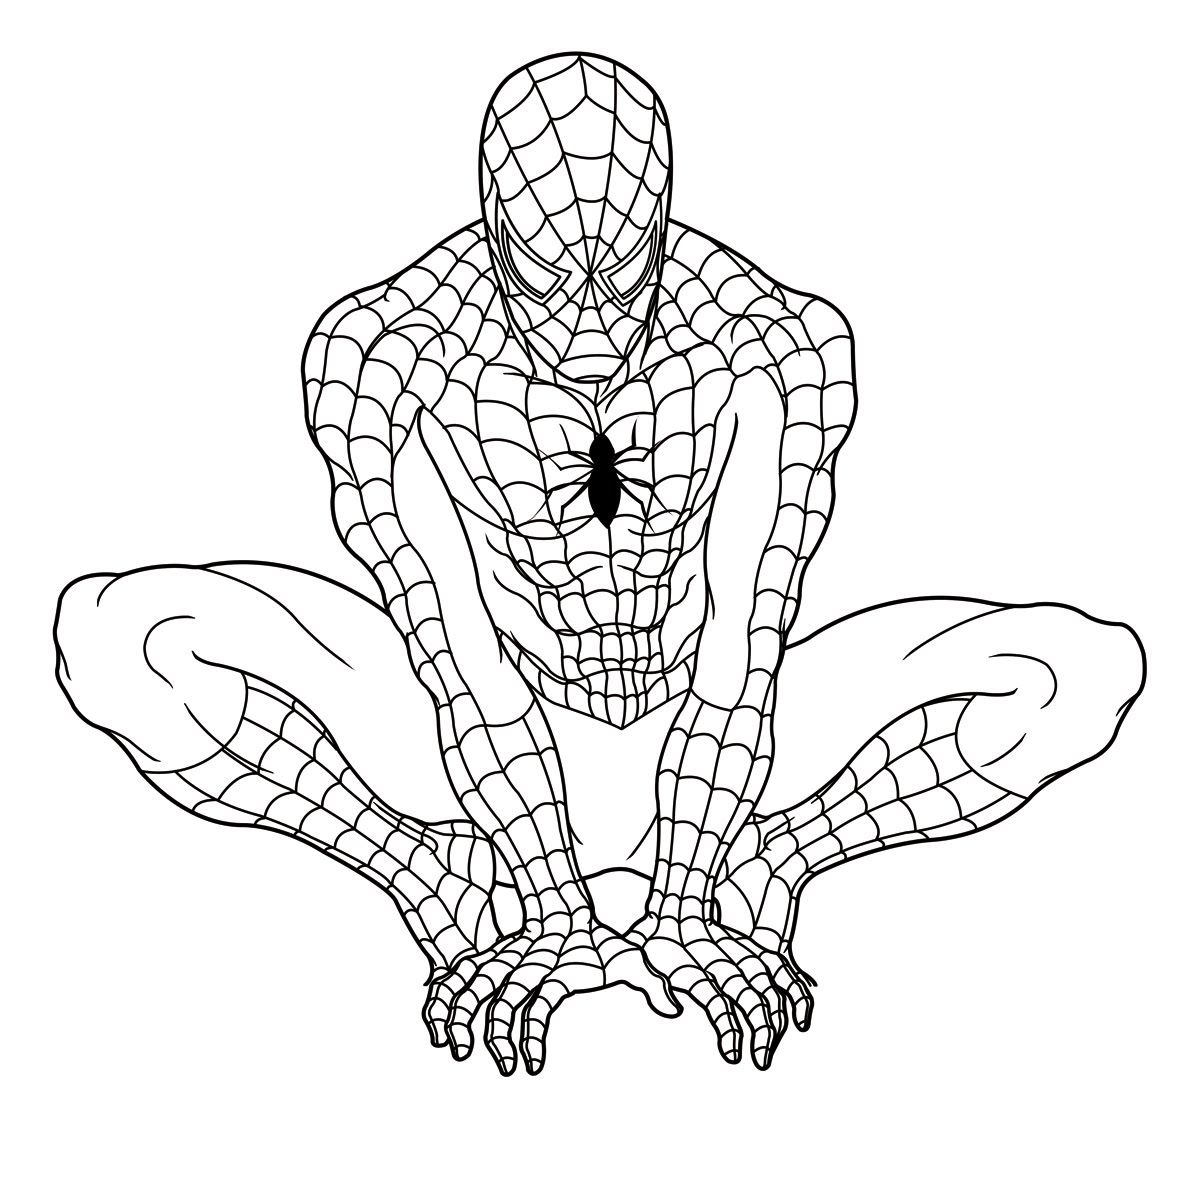 Spiderman Coloring Pages Free Large Images Superhero Coloring Pages Spiderman Coloring Superhero Coloring